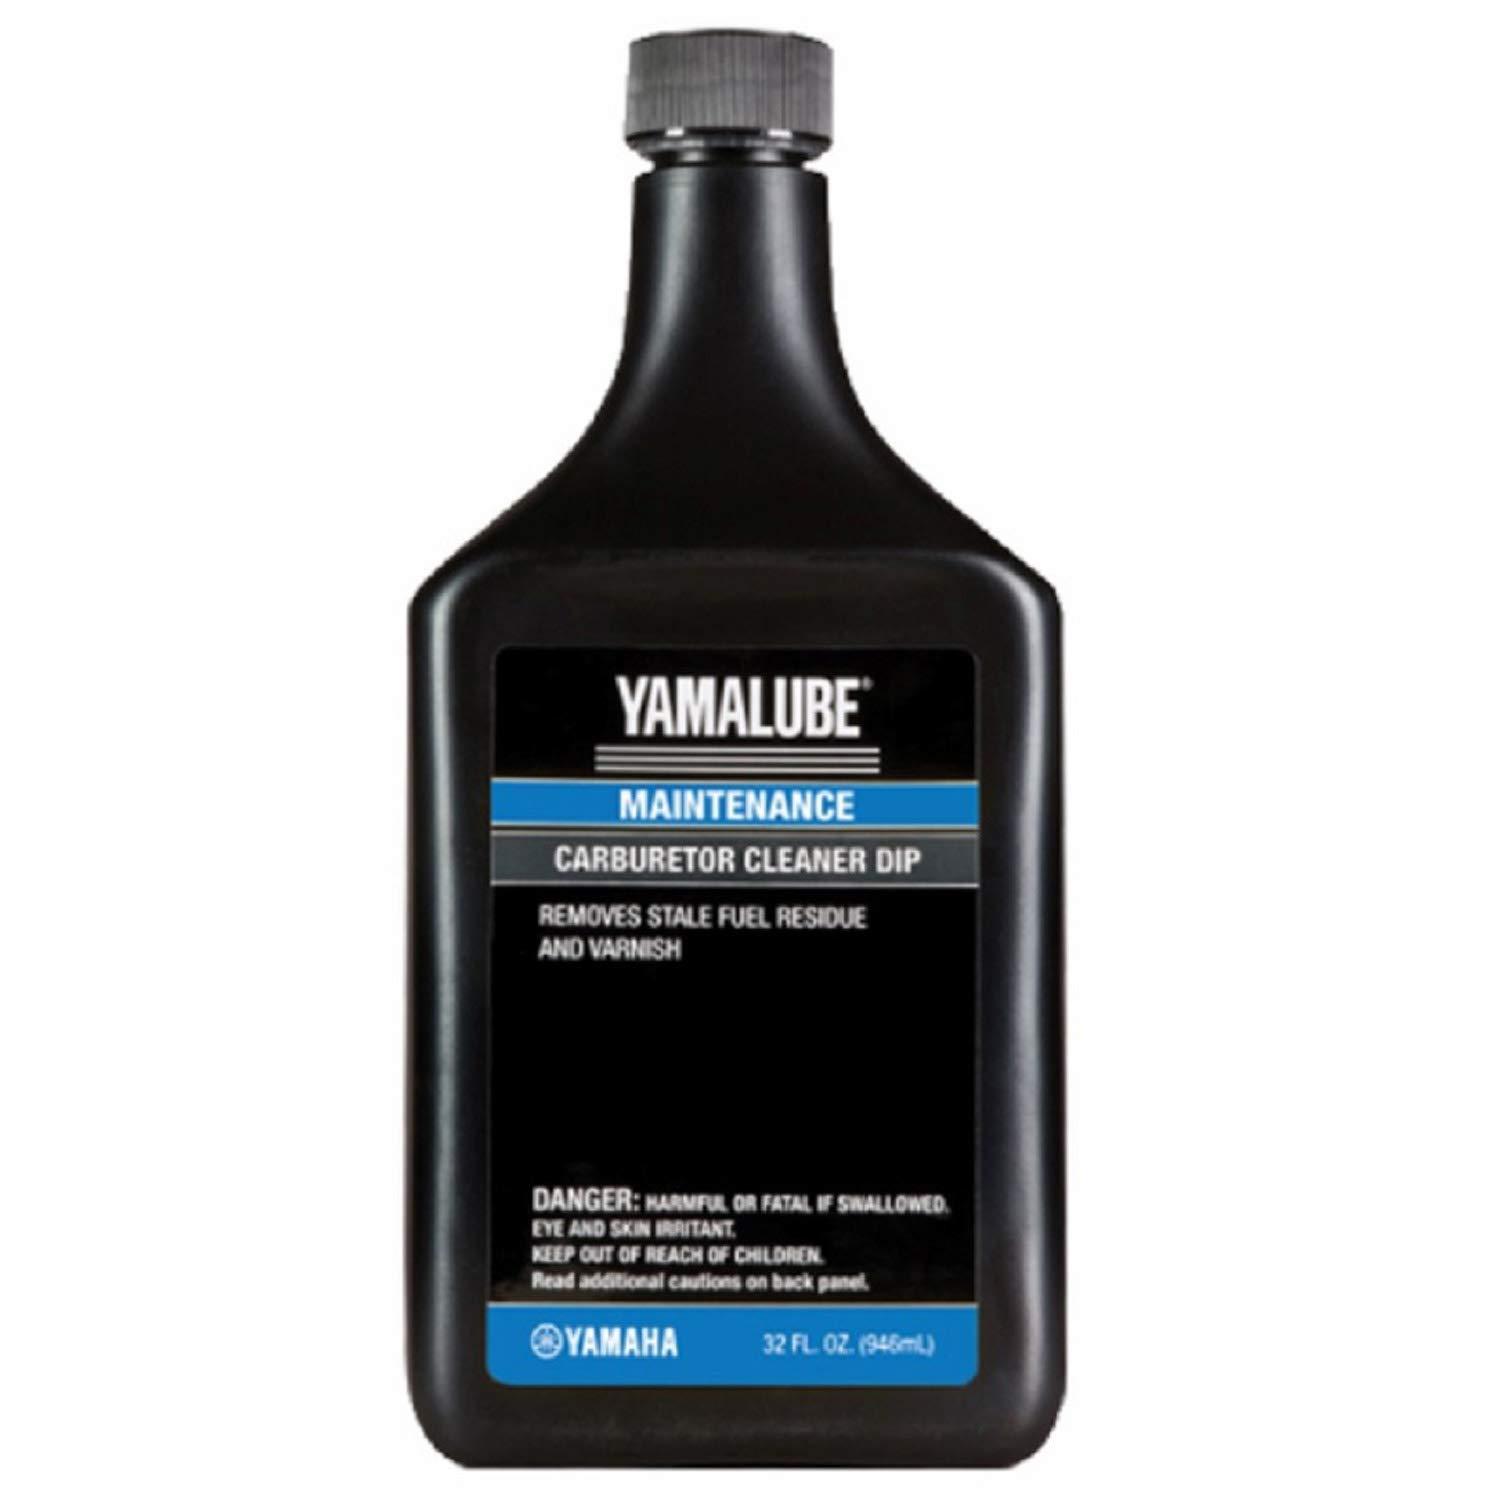 Yamalube Carburetor Cleaner Dip 32 oz. by Yamaha